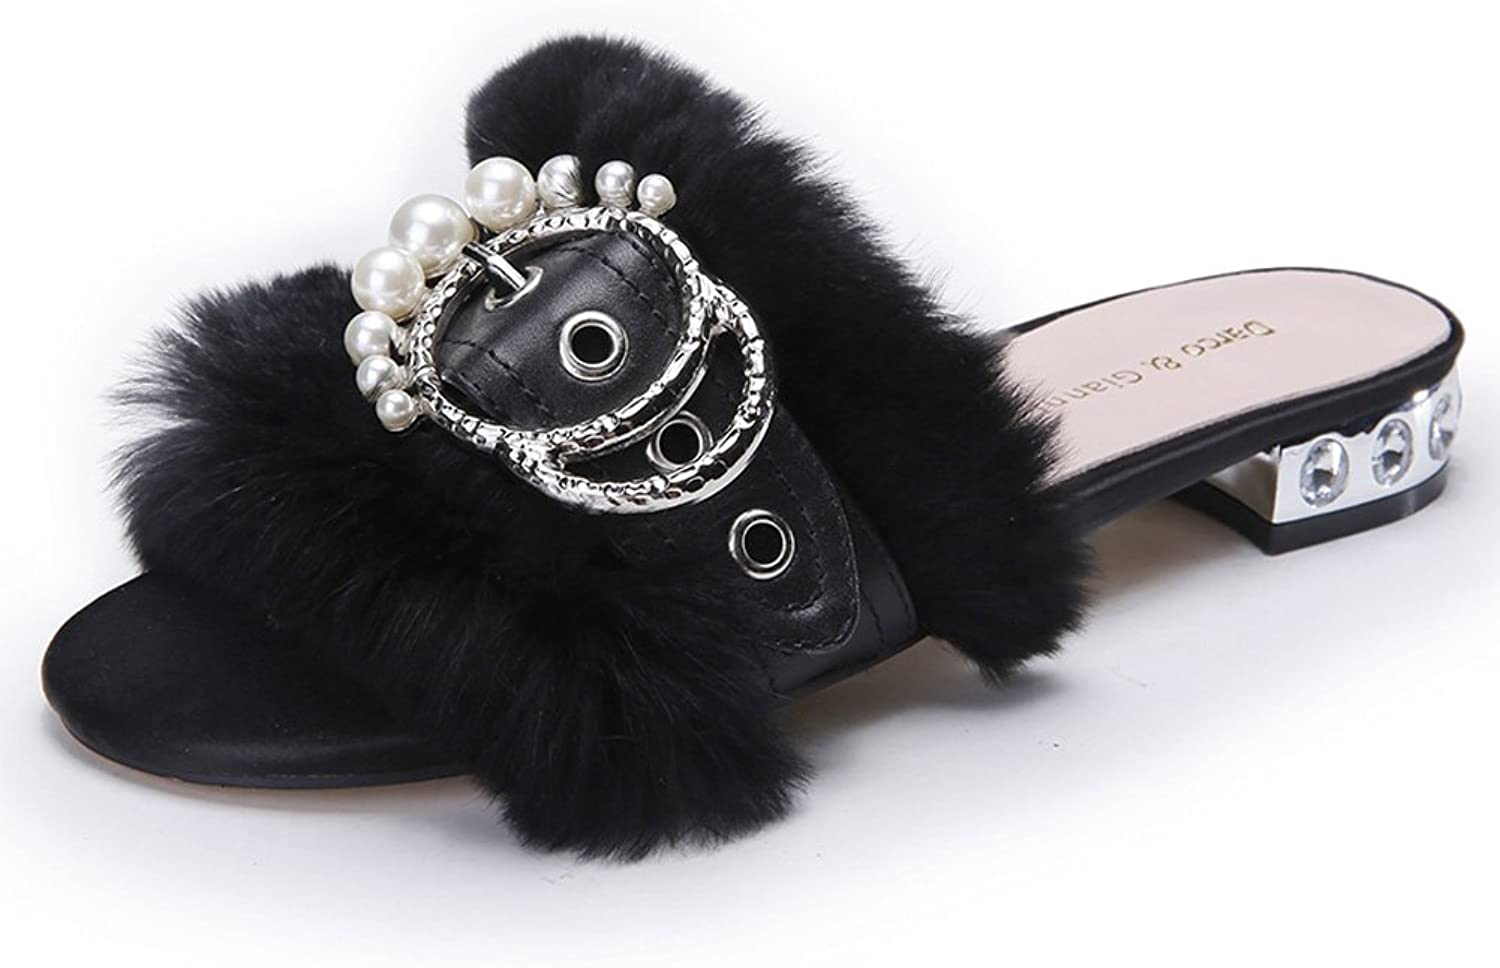 Women's Flat Fur Slippers Ladies Sandals Leather Peep Toe Slide Mules shoes With Low Heel Rhinestone Large Sizes